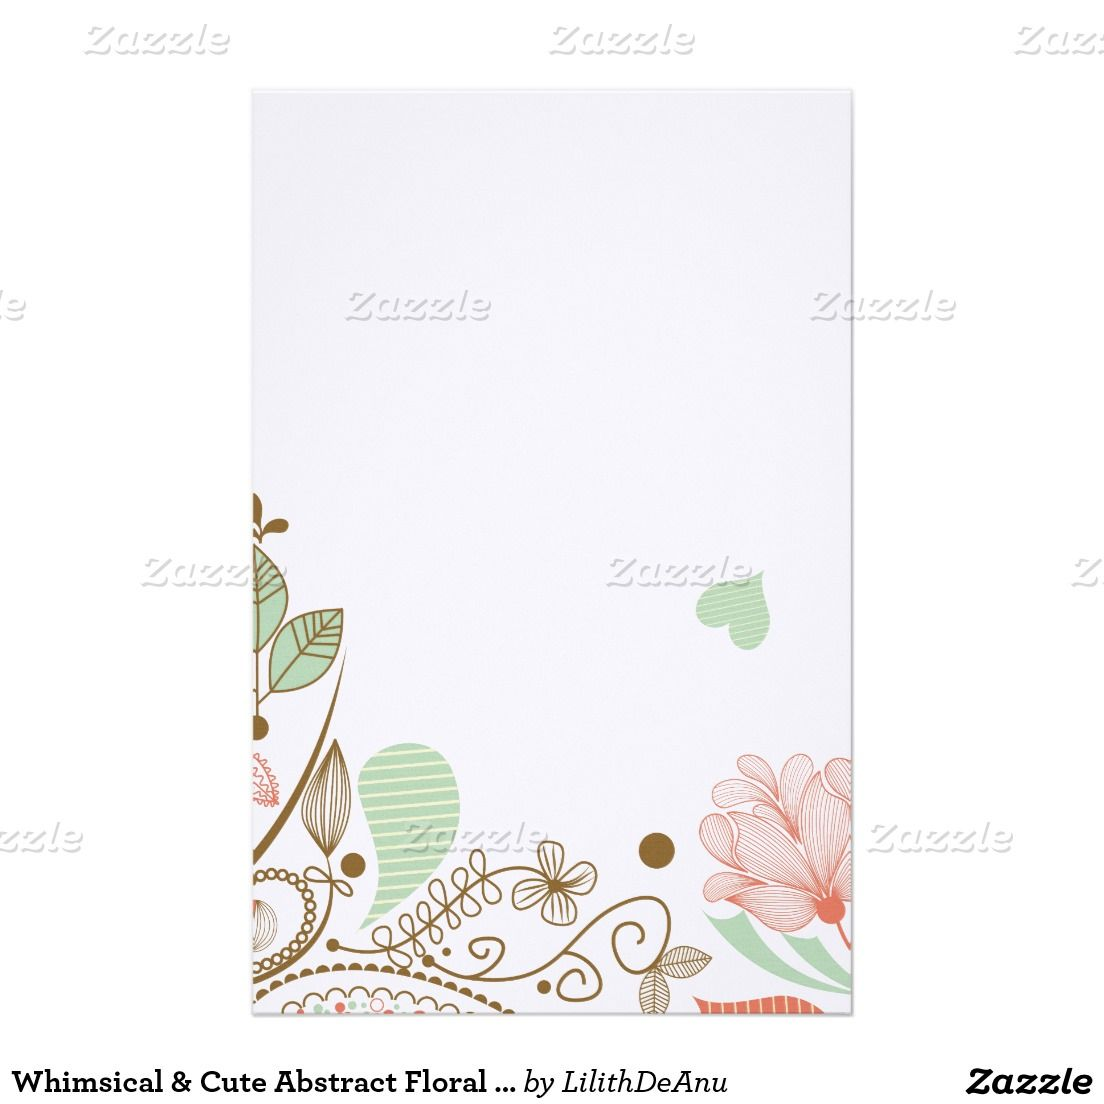 Whimsical & Cute Abstract Floral Stationary Stationery